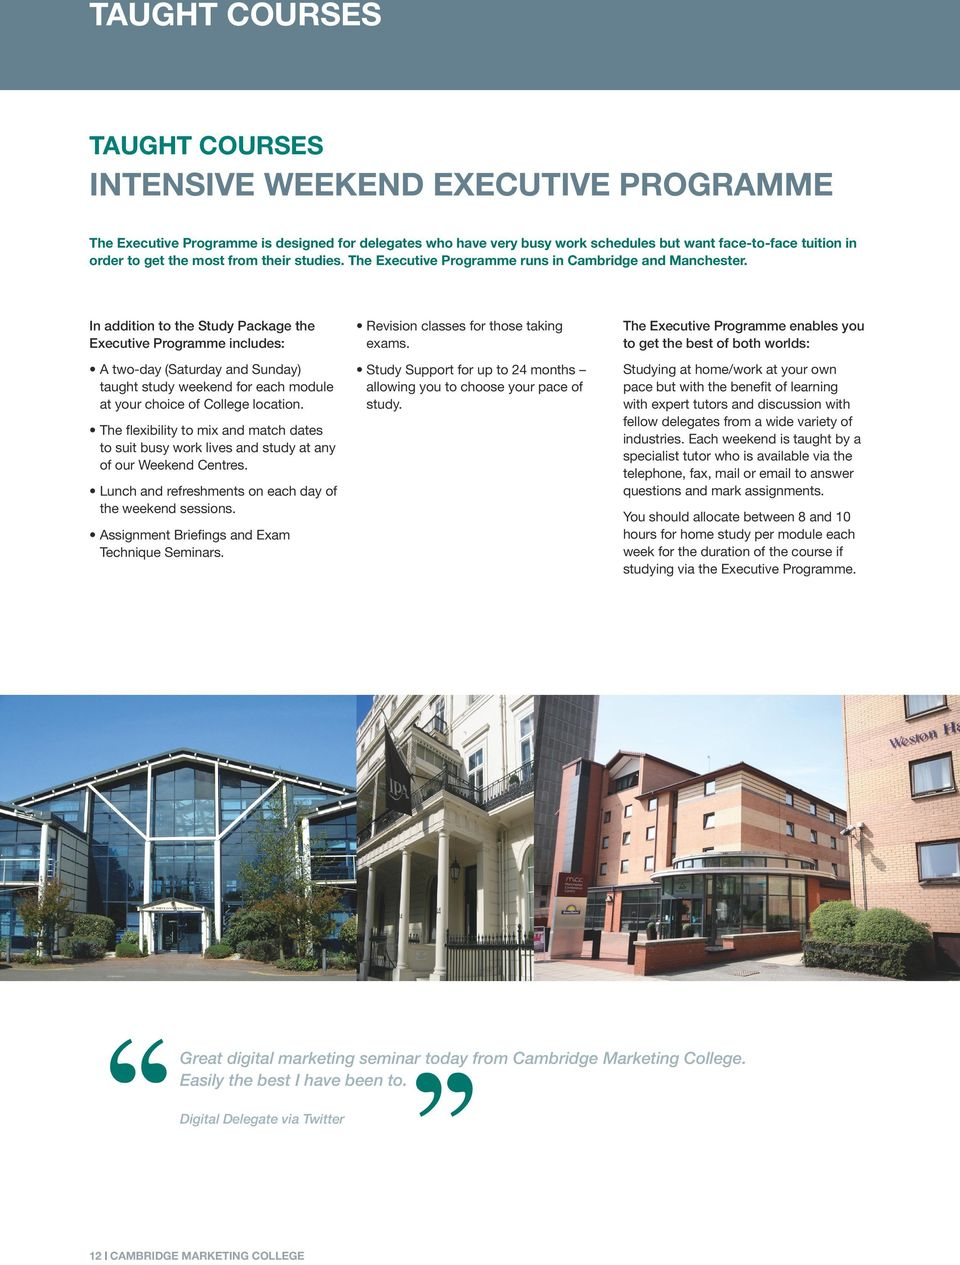 The Executive Programme enables you to get the best of both worlds: A two-day (Saturday and Sunday) taught study weekend for each module at your choice of College location.